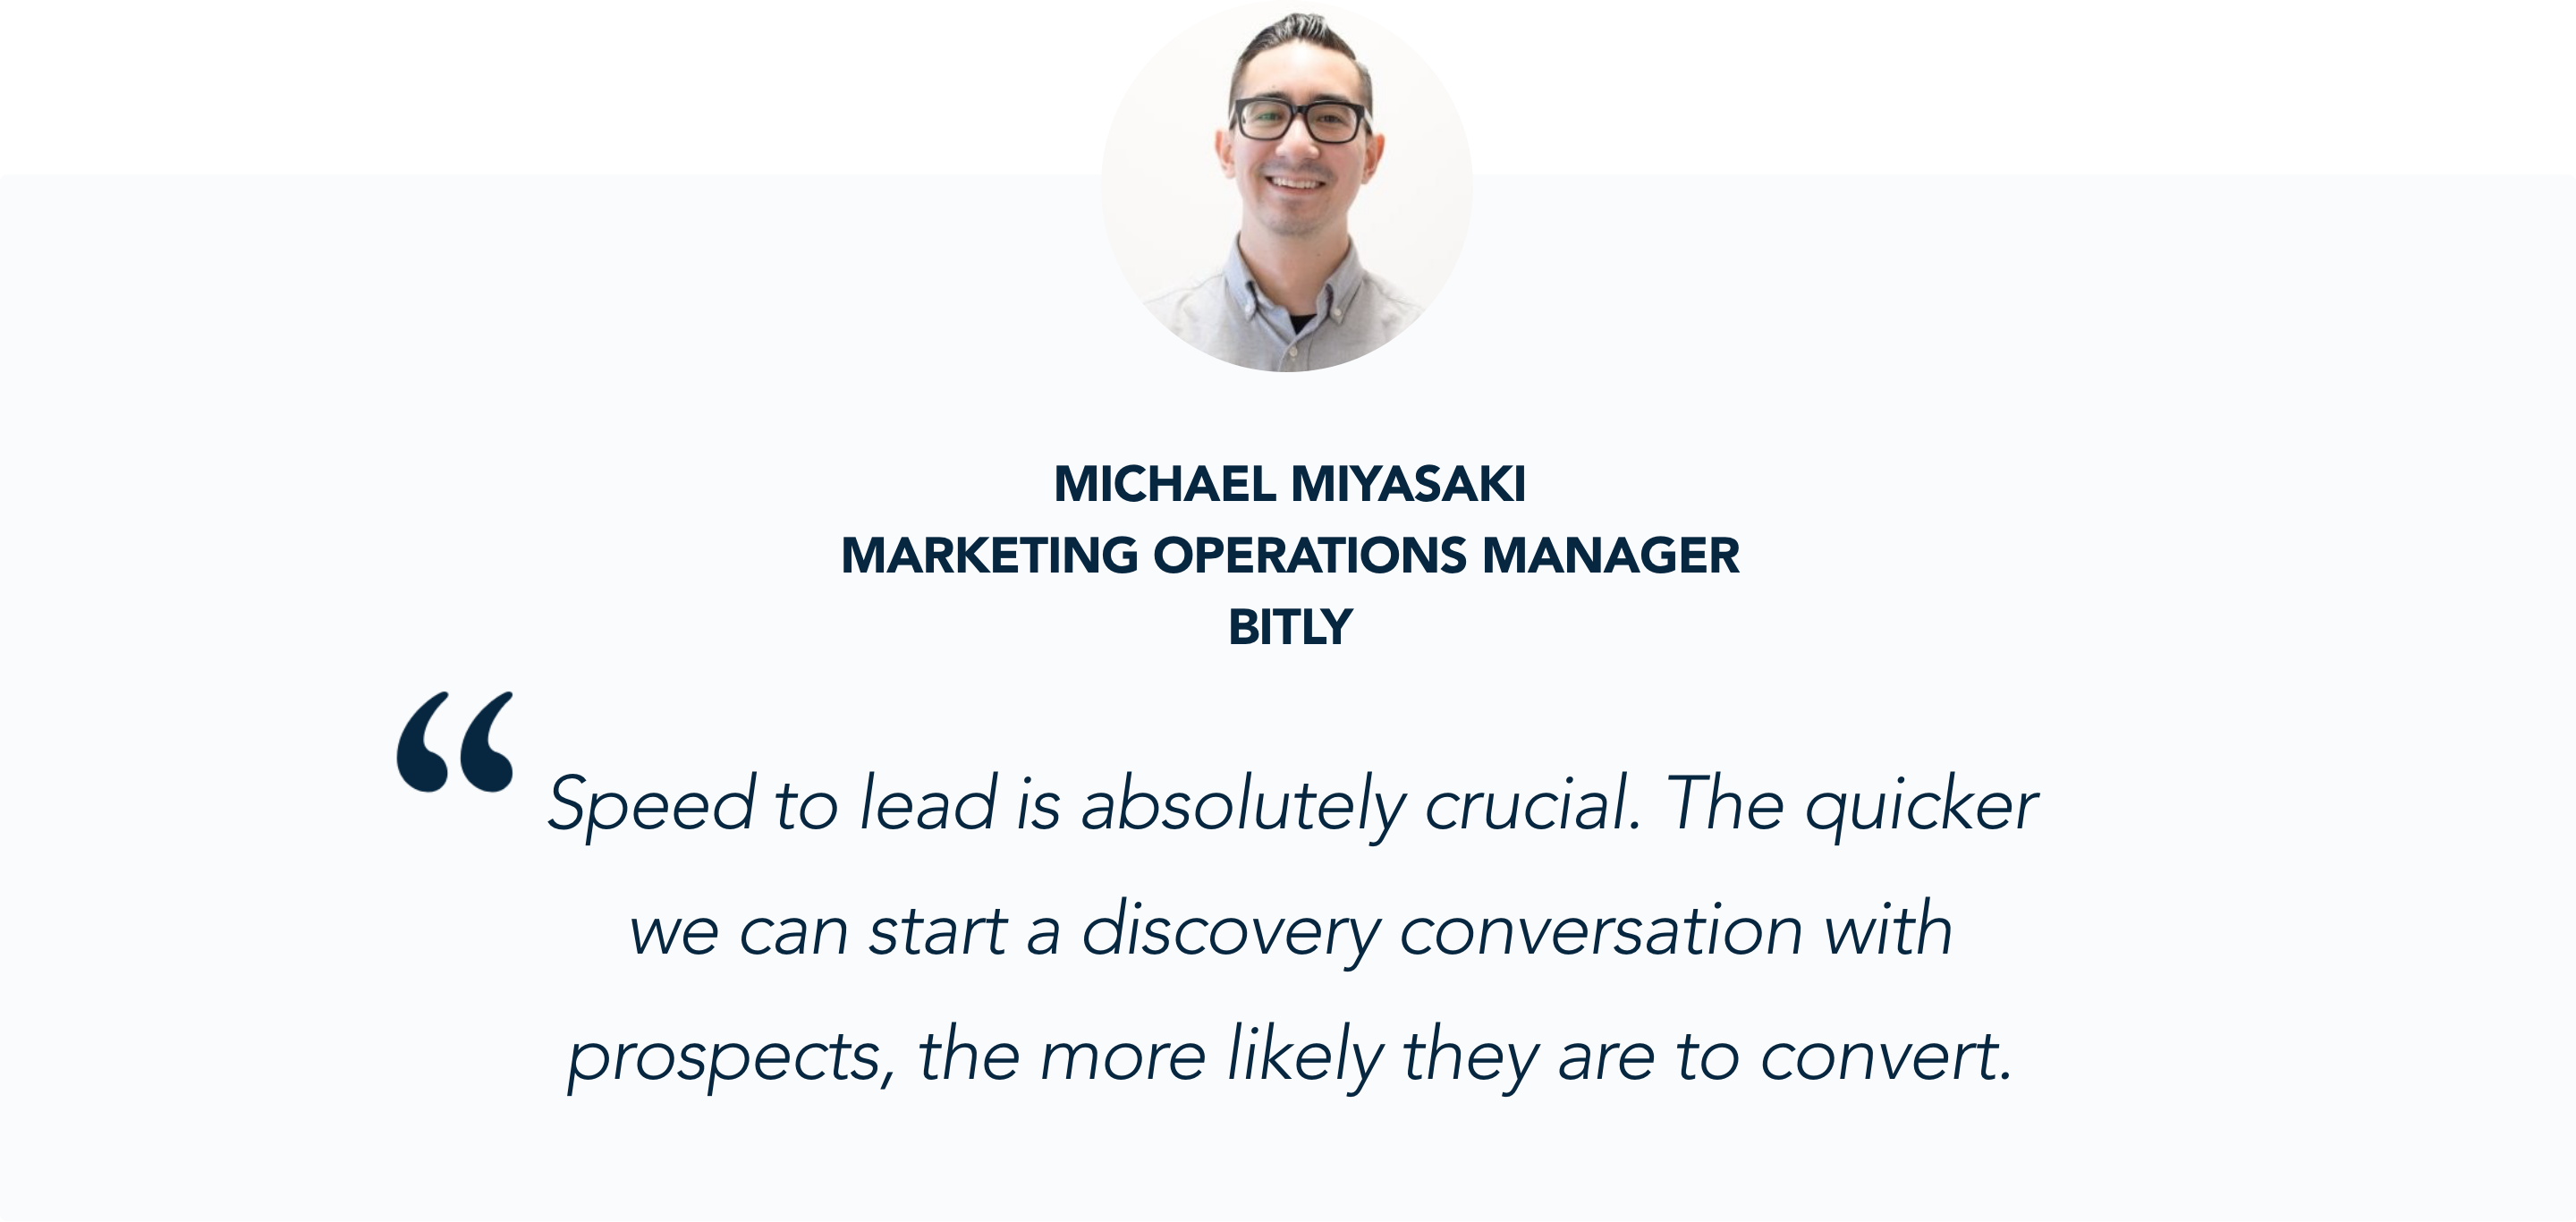 Michael Miyasaki, Marketing Operations Manager at Bitly, shares his experience with Qualified's conversational marketing platform